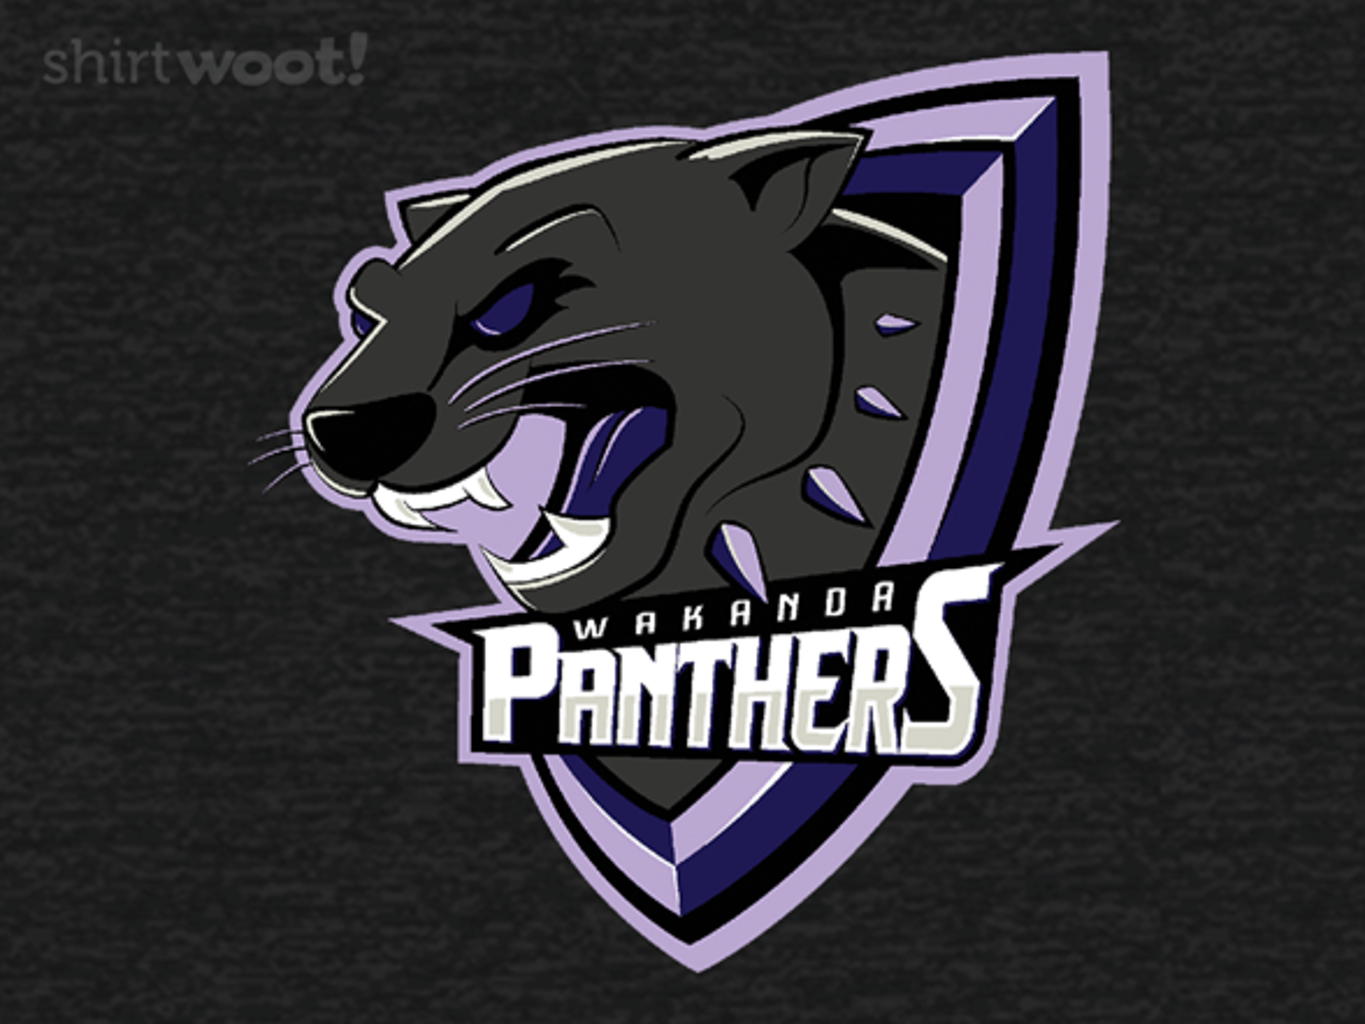 Woot!: Wakanda Panthers